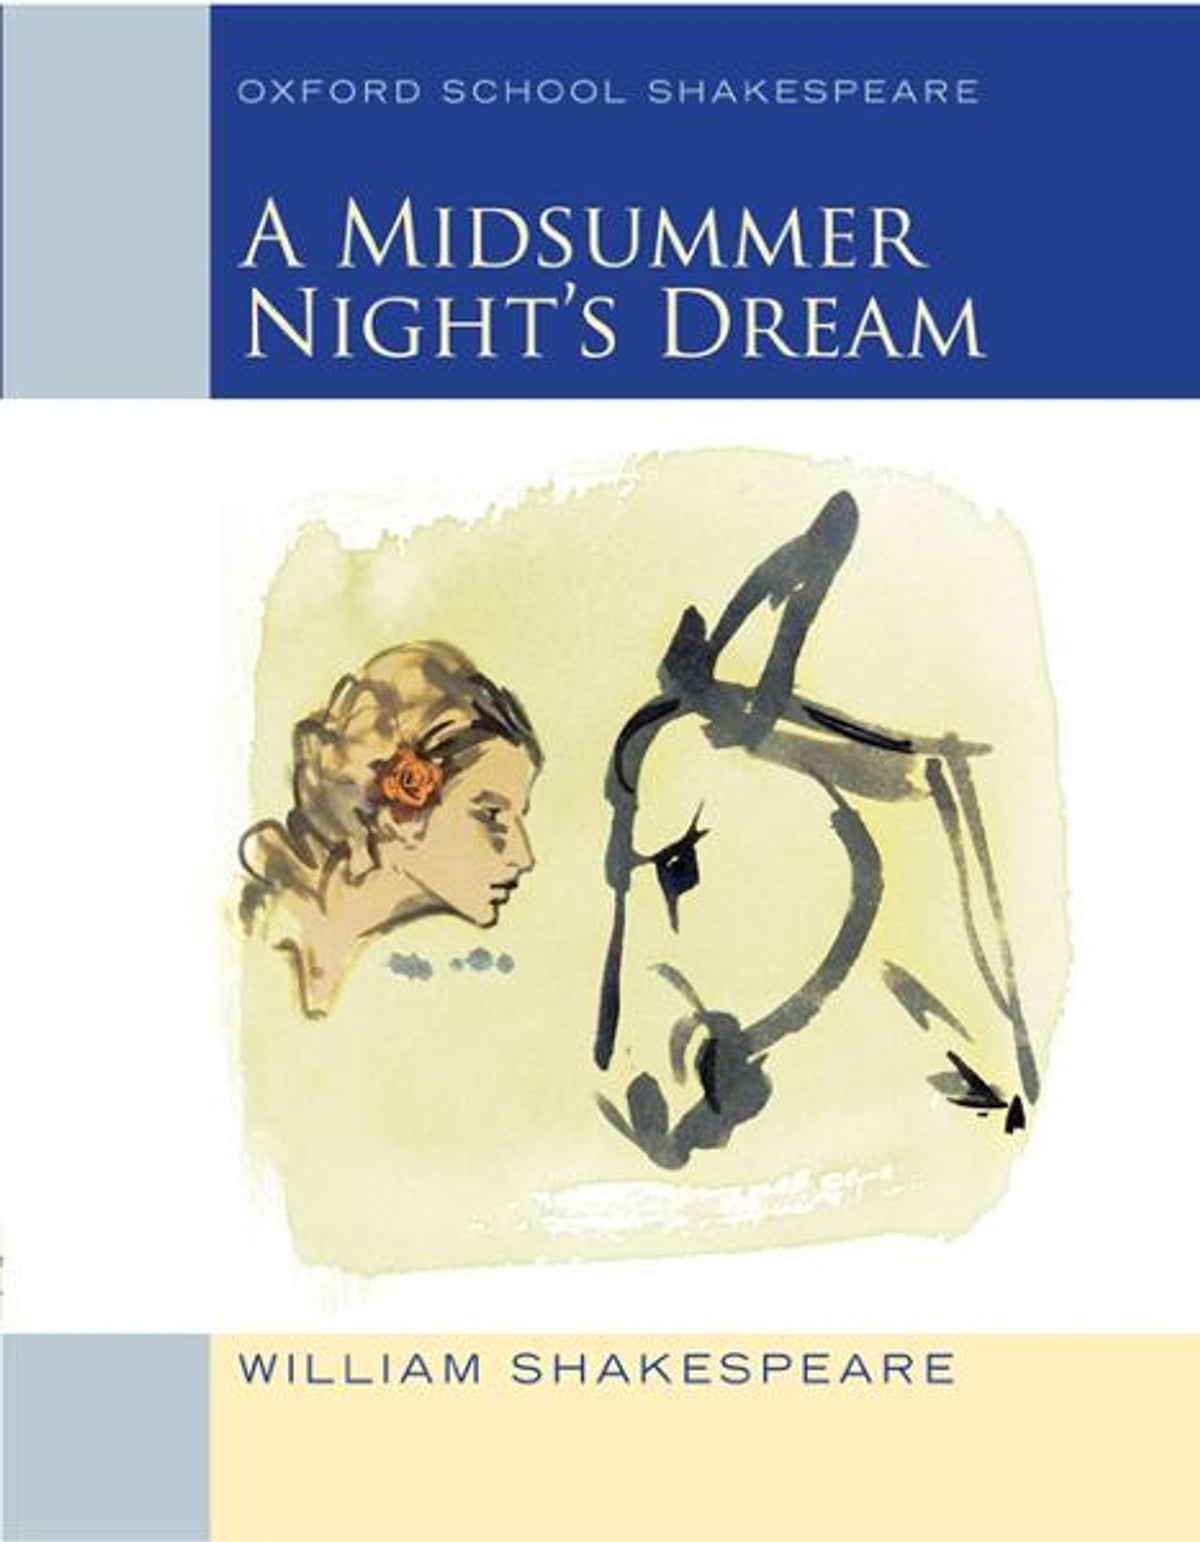 the theme of love in a midsummer nights dream by william shakespeare Plot summary of and introduction to william shakespeare's play a midsummer night  and other resources plot summary of and introduction to william shakespeare's play a midsummer night's dream, with links to online texts, digital images, and other resources  titania, uses the flower juice on her eyes she falls in love with bottom.